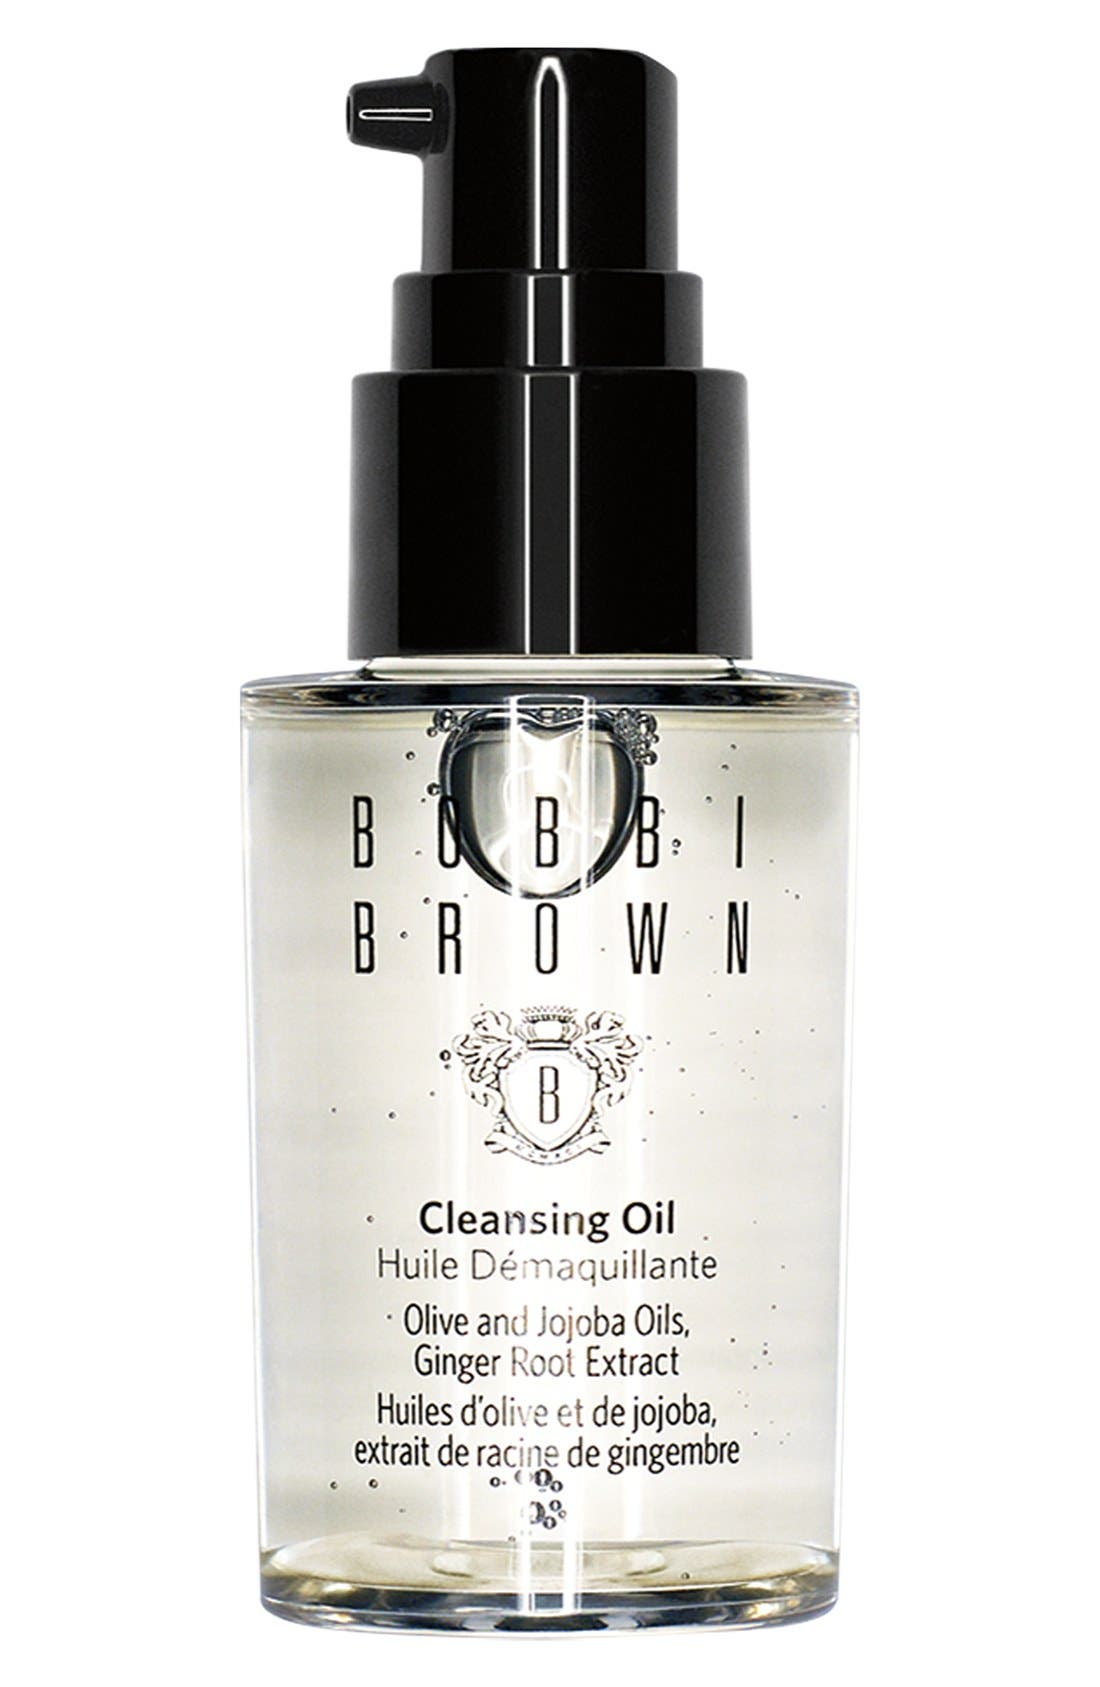 Bobbi Brown Travel Size Soothing Cleansing Oil (1 oz.)